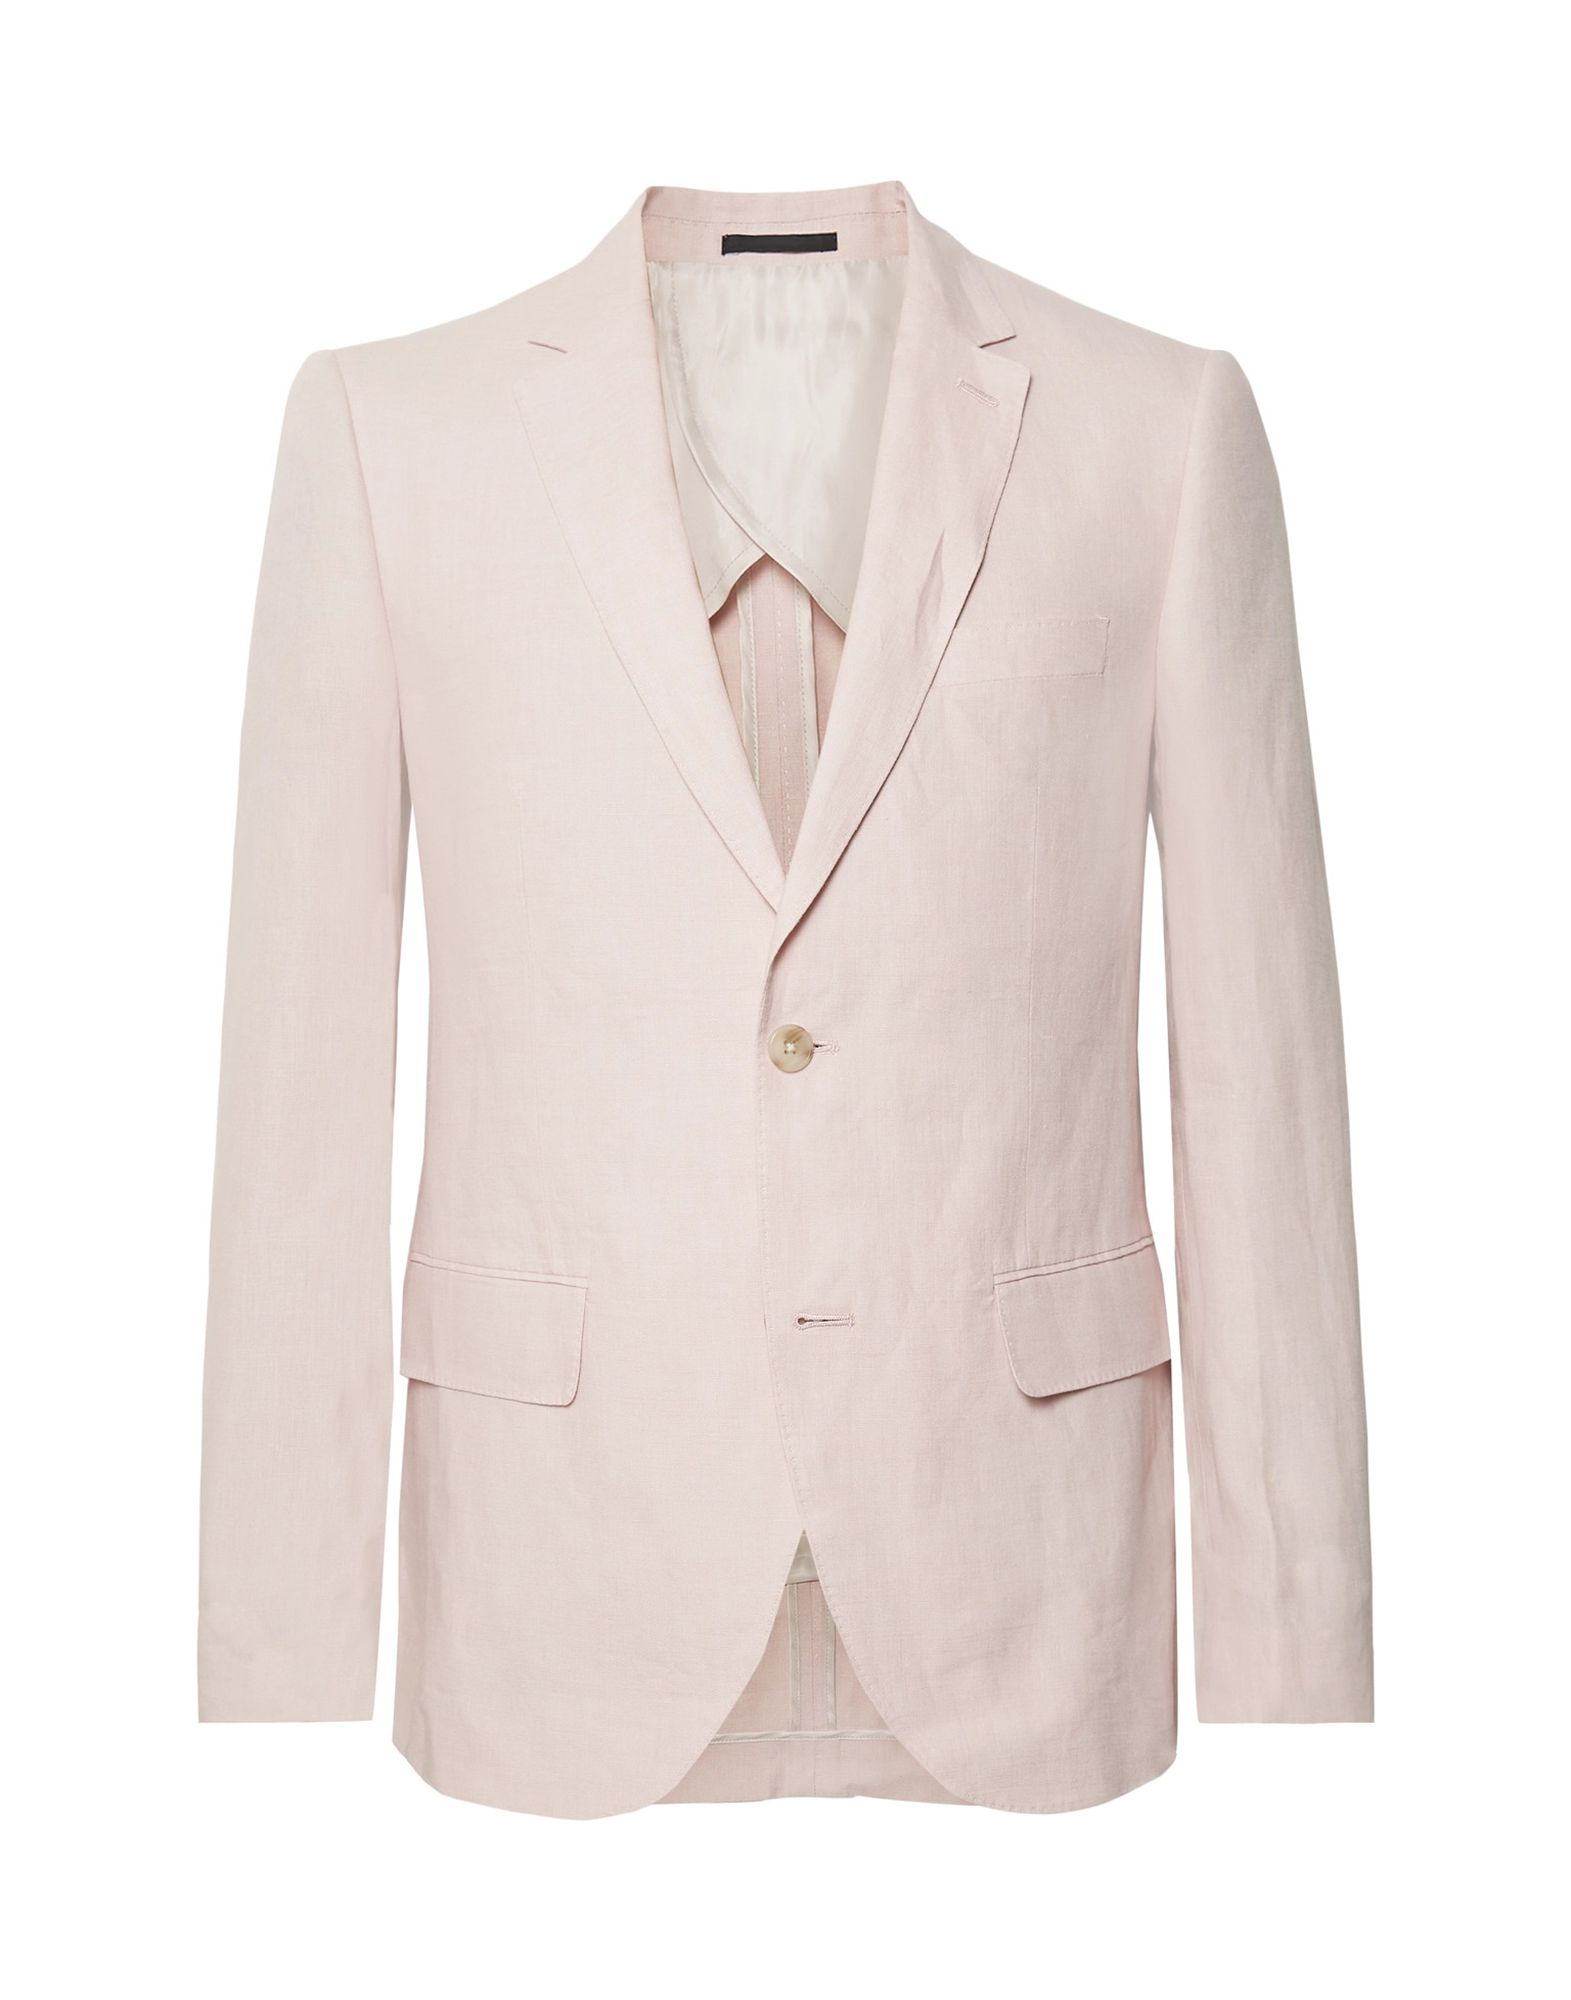 CLUB MONACO Suit jackets. plain weave, no appliqués, solid color, lapel collar, long sleeves, single-breasted, multipockets, button closing, single chest pocket, semi-lined, dual back vents. 100% Linen